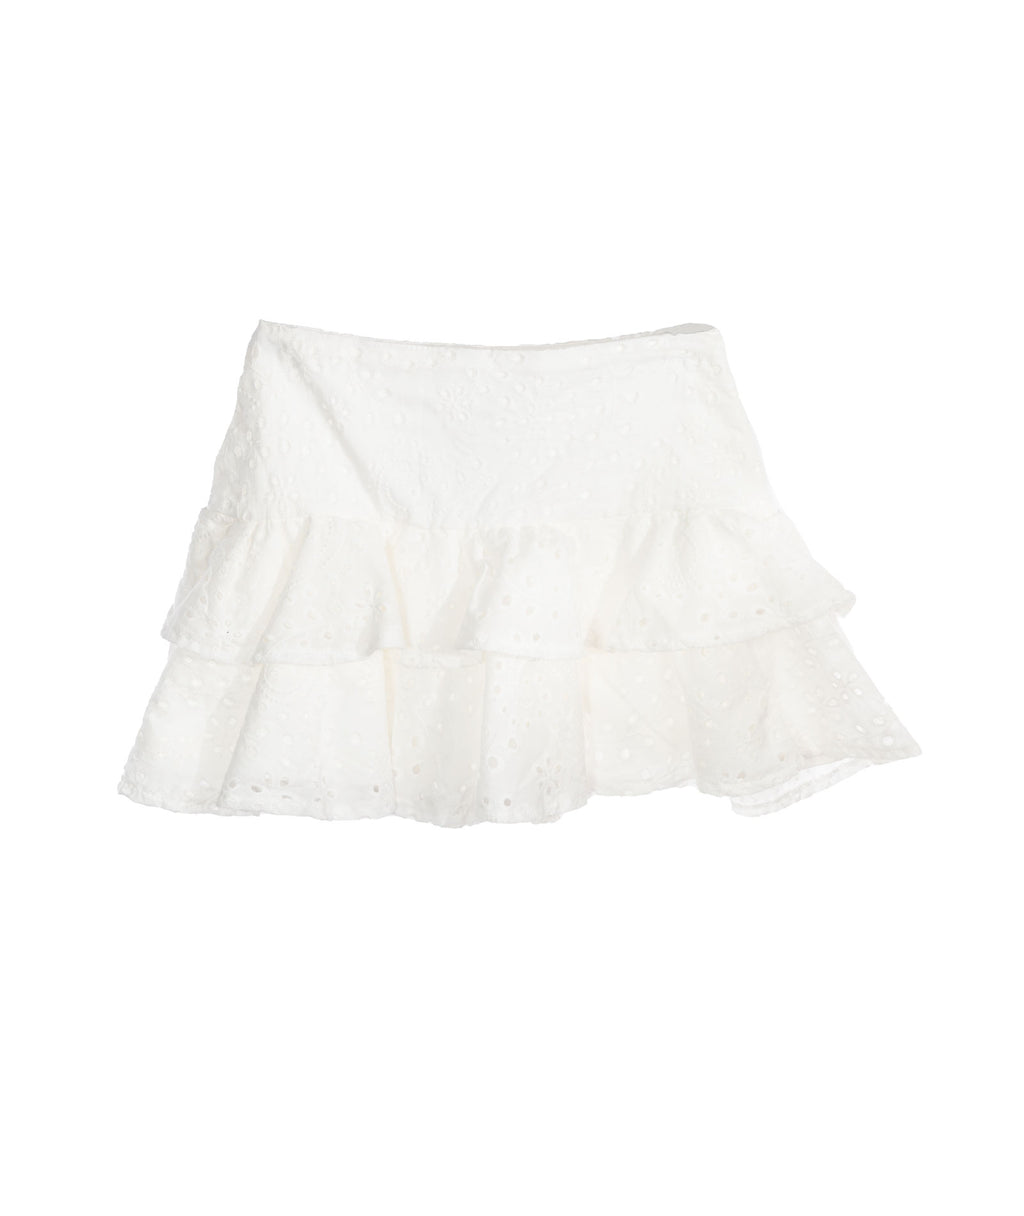 Katie NYC Girls White Lily Eyelet Skirt